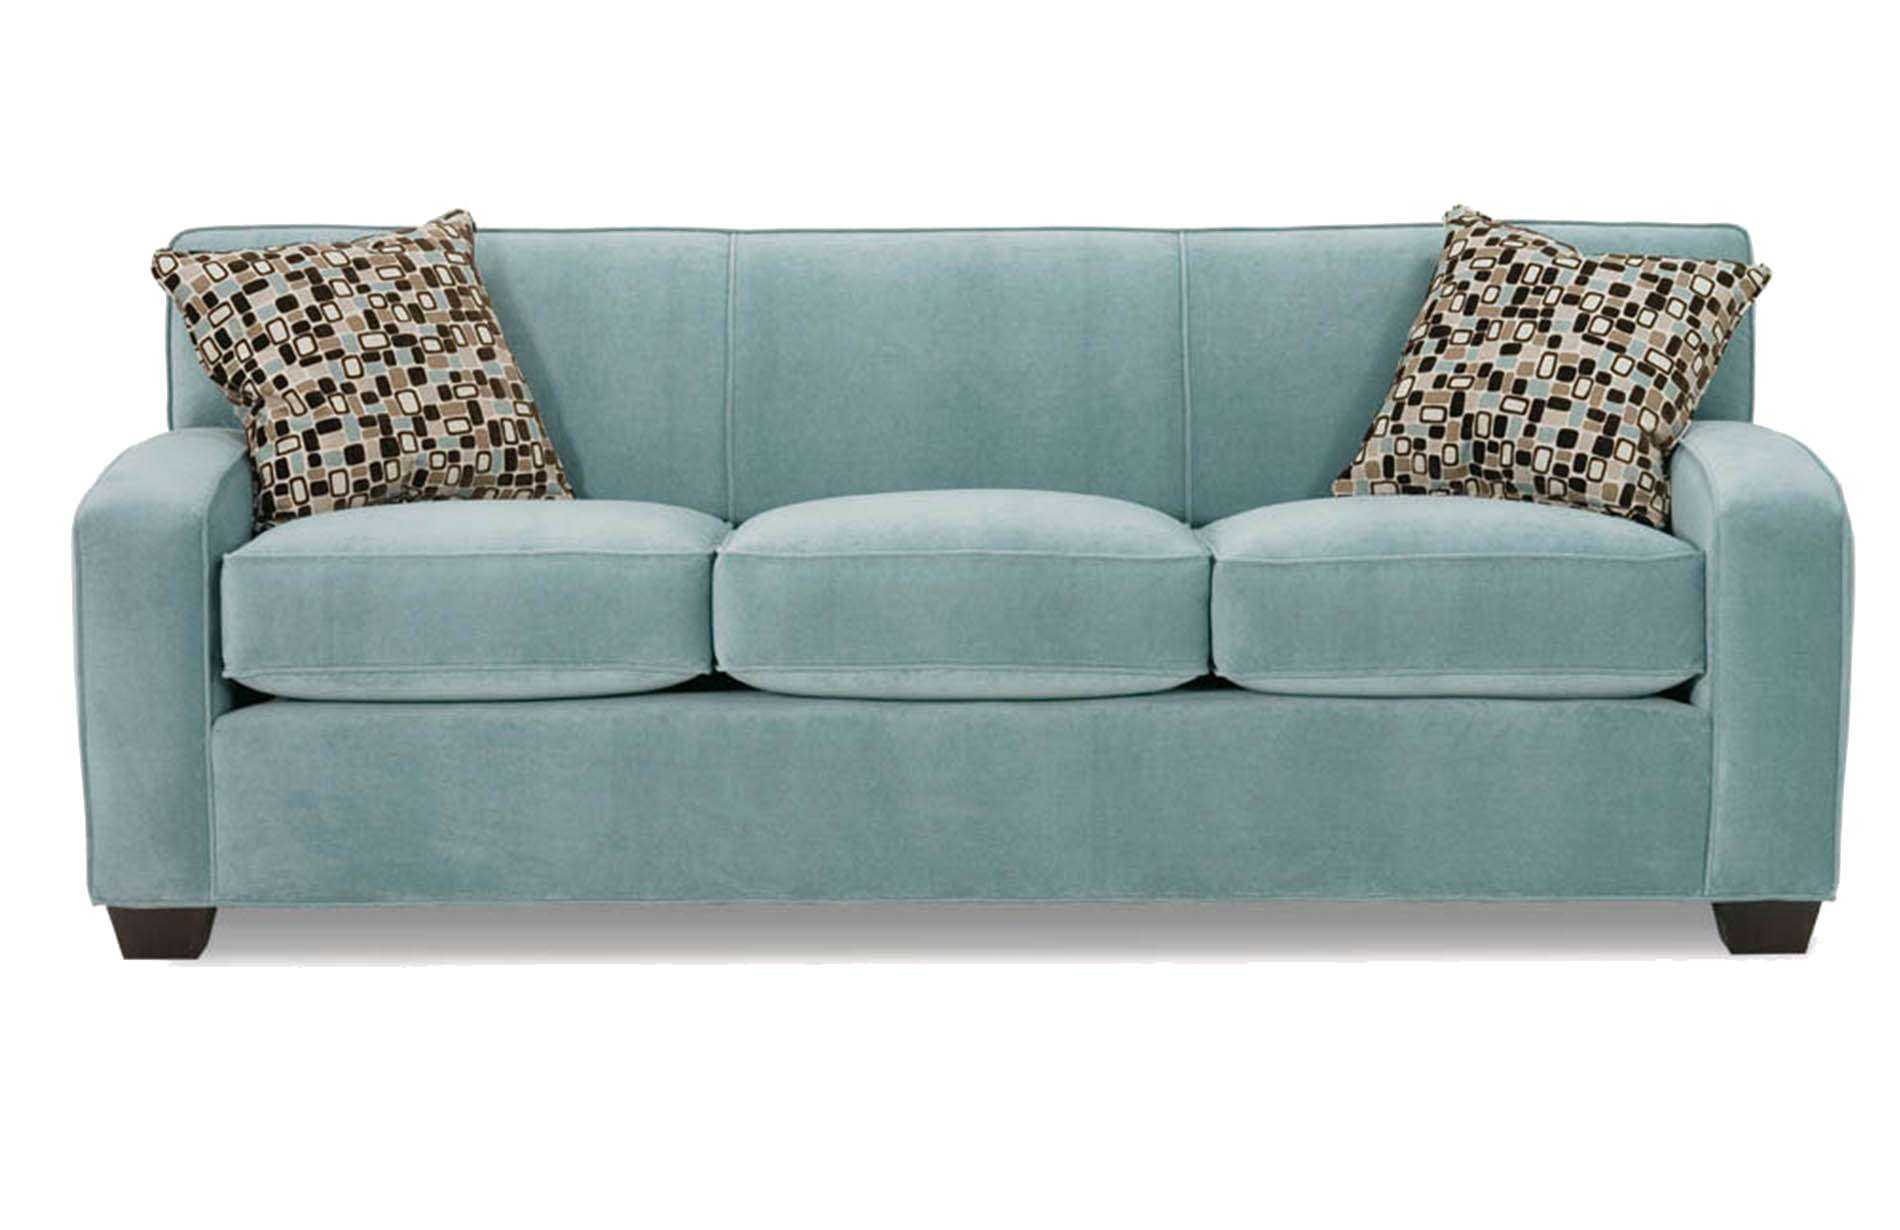 Horizon Sofa